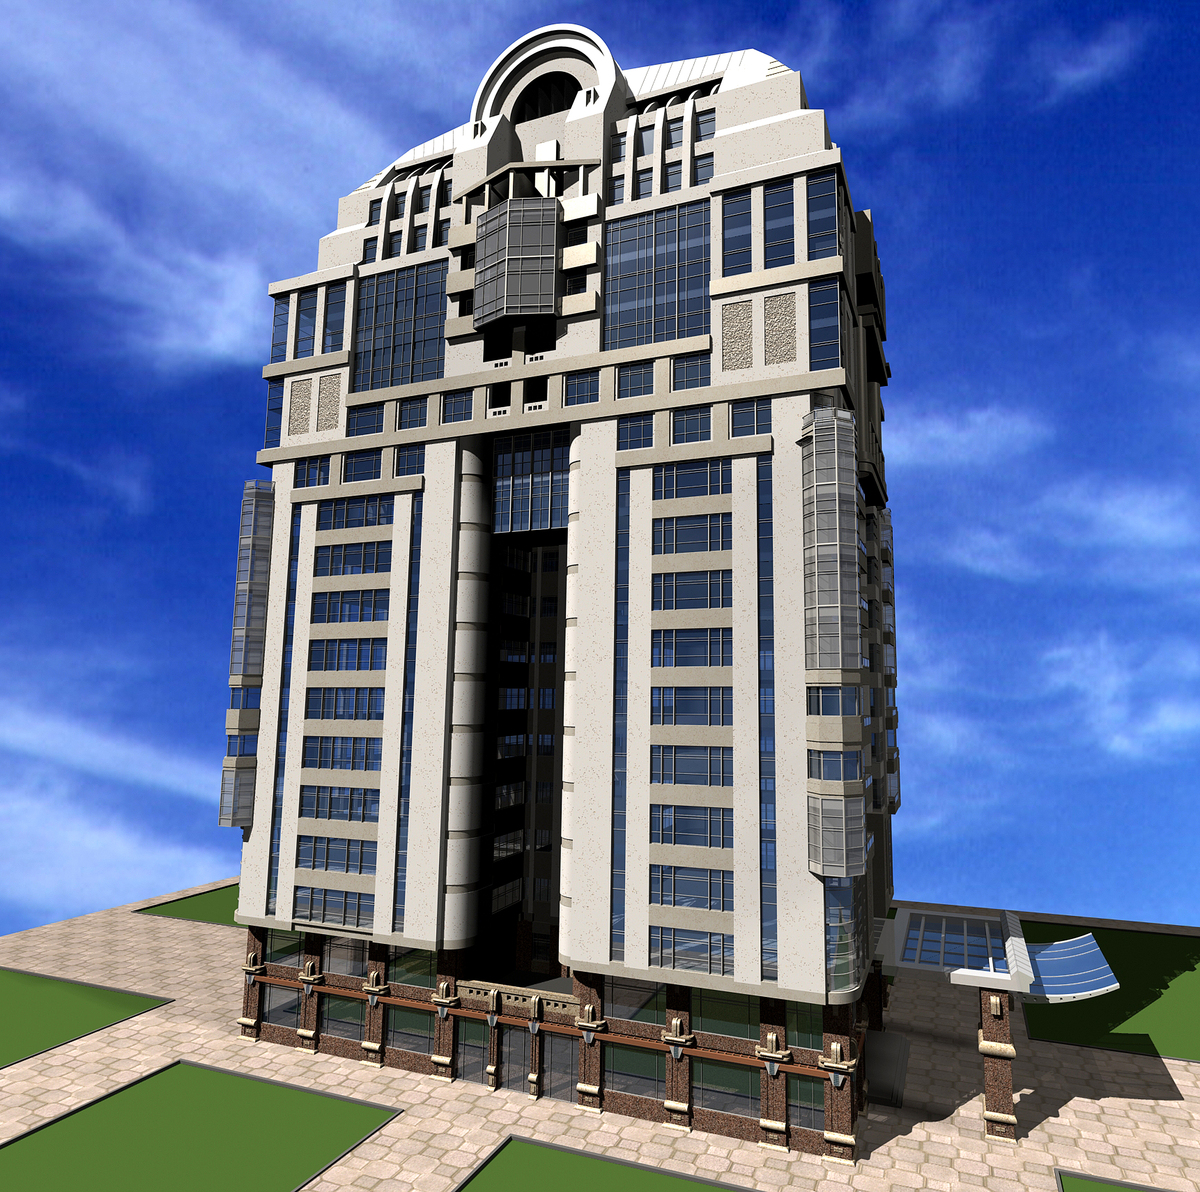 Mr hoorazar residential tower